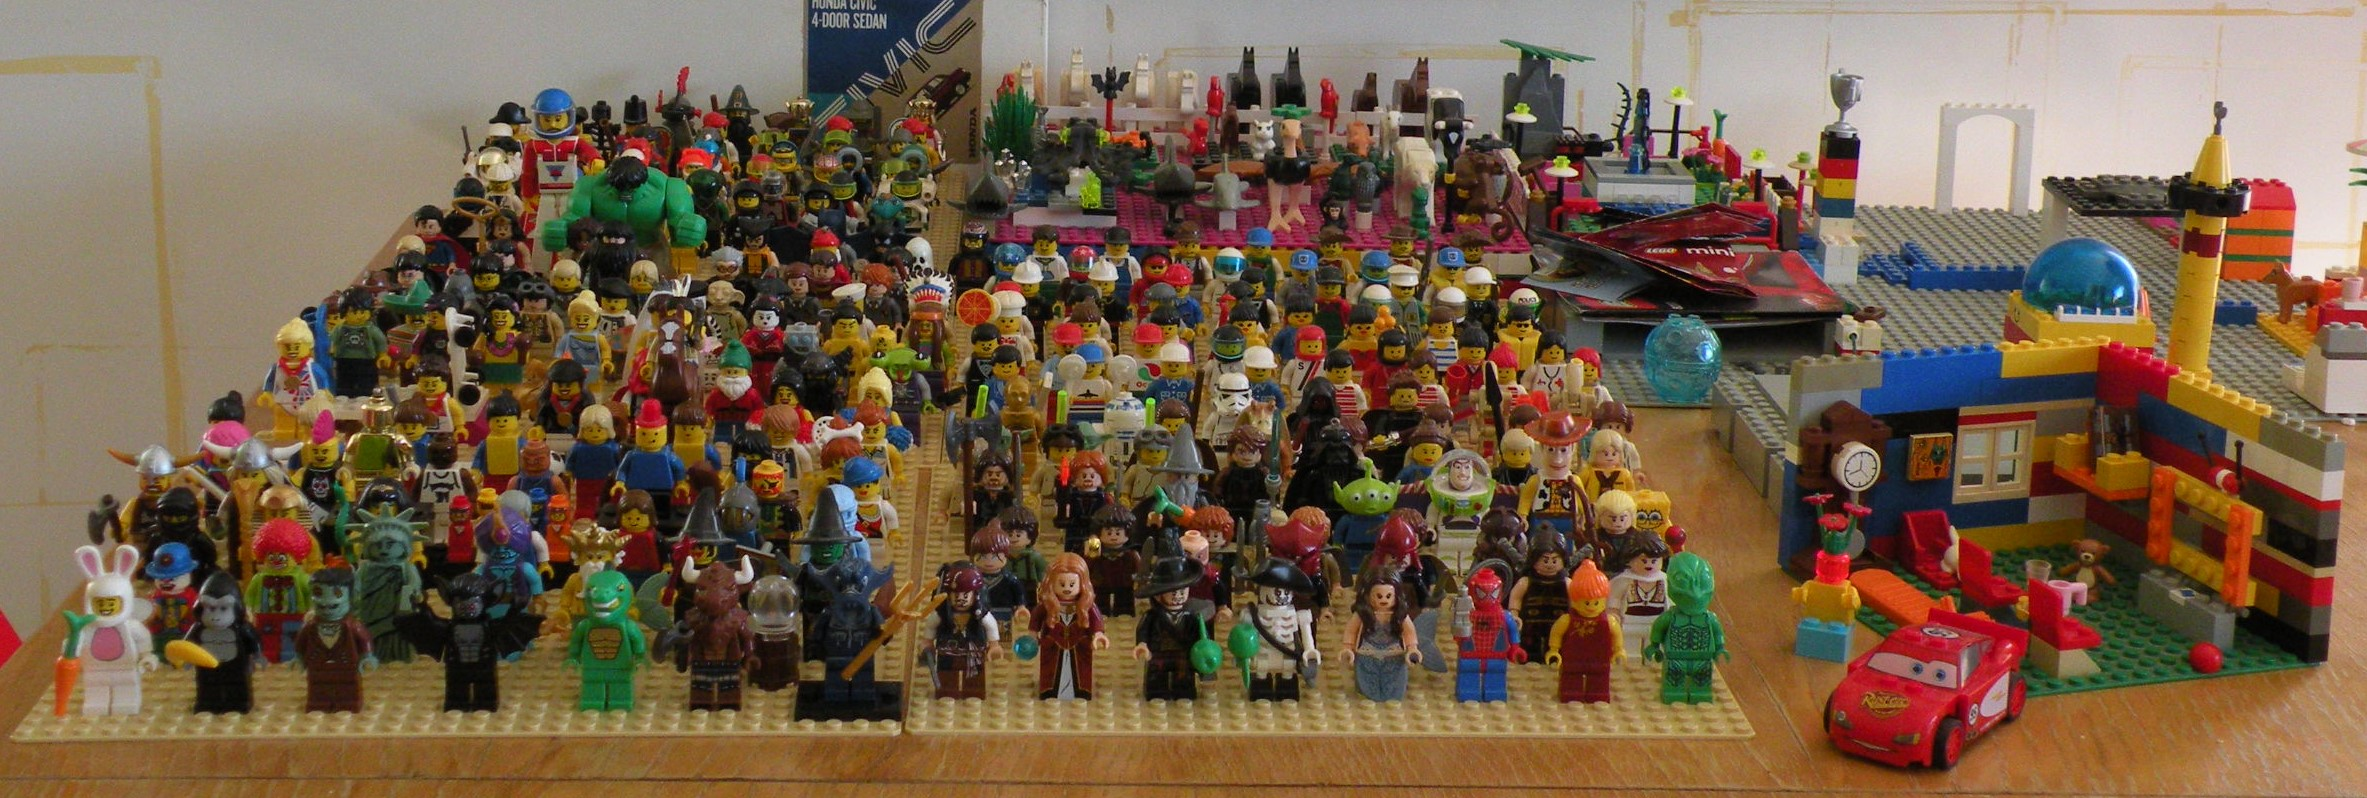 lego for adults: the collection